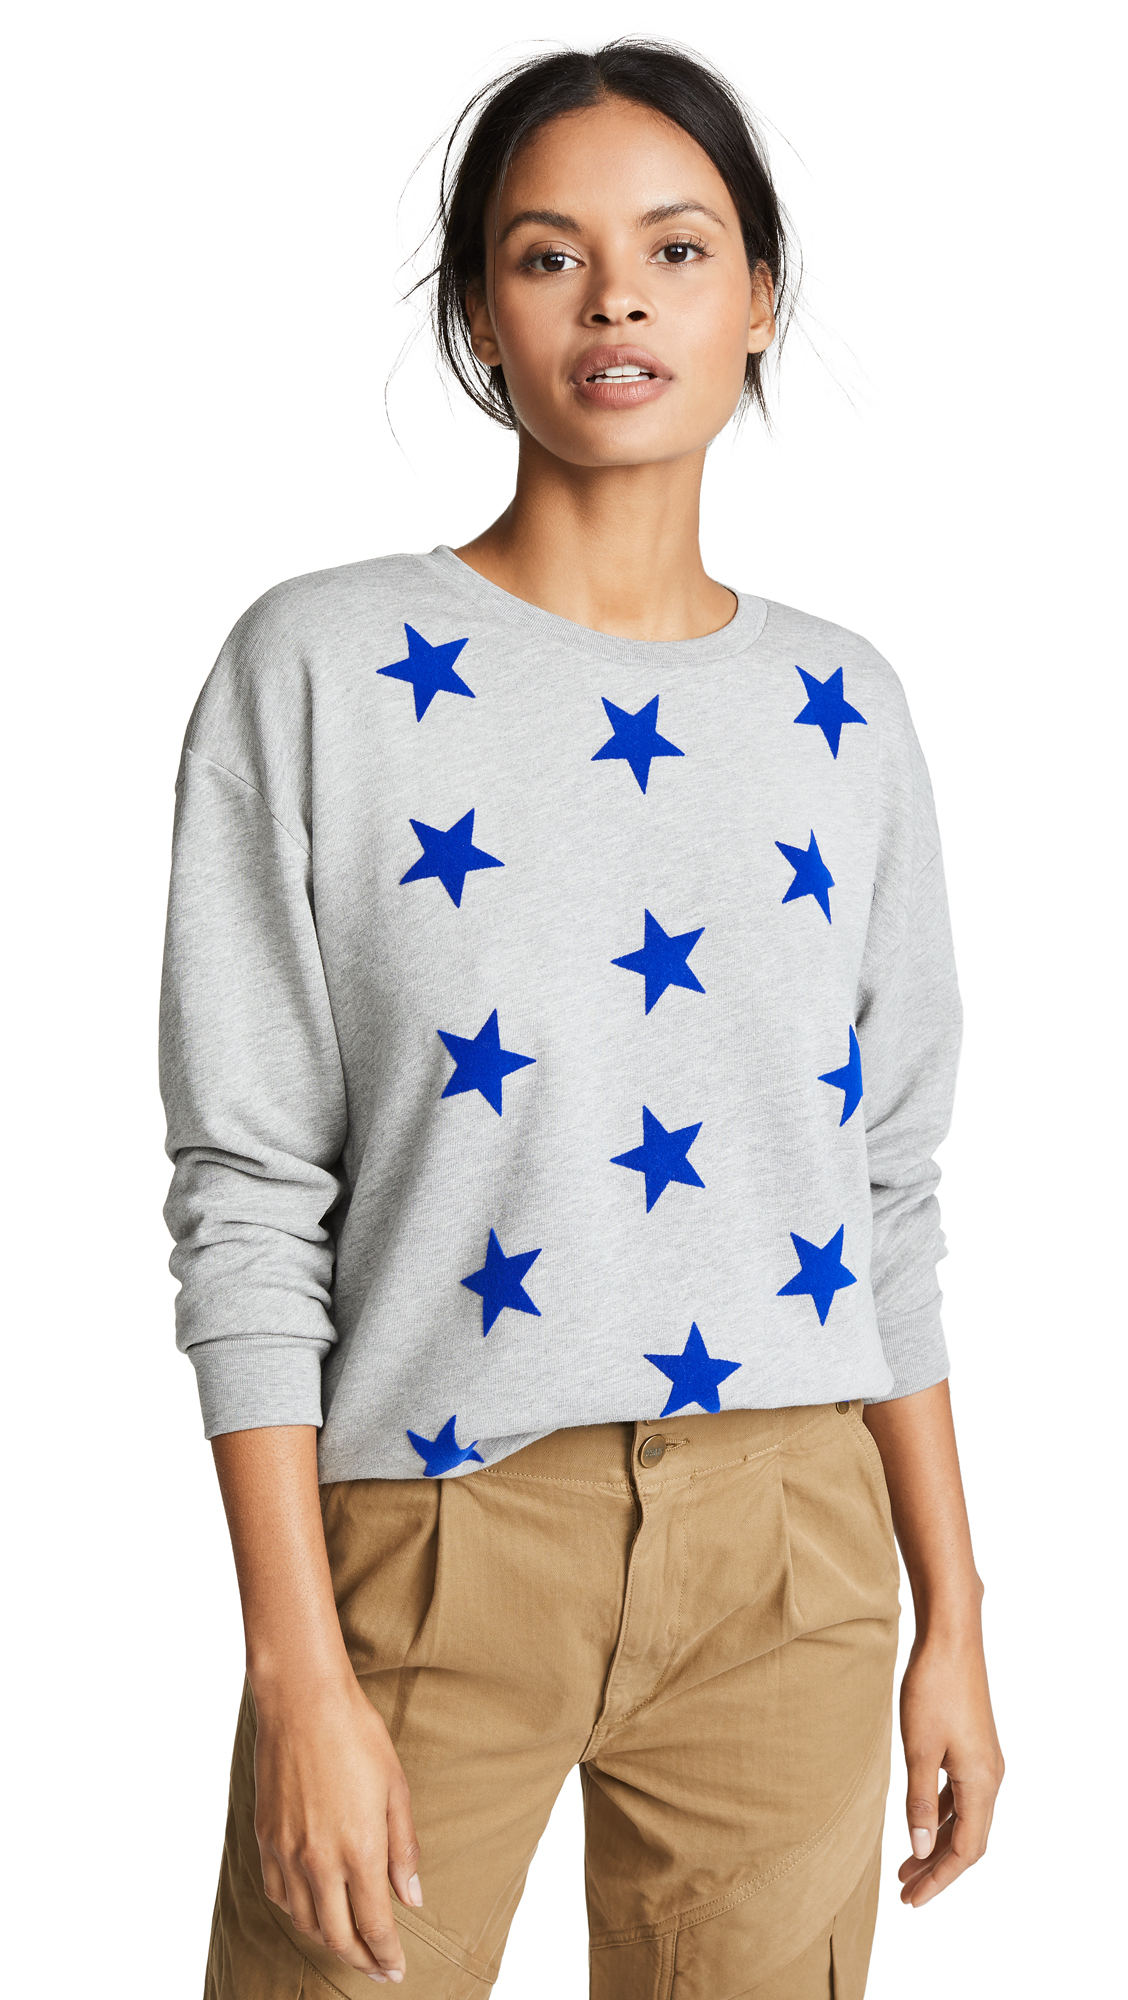 SOUTH PARADE ALEXA SUPERSTAR SWEATSHIRT